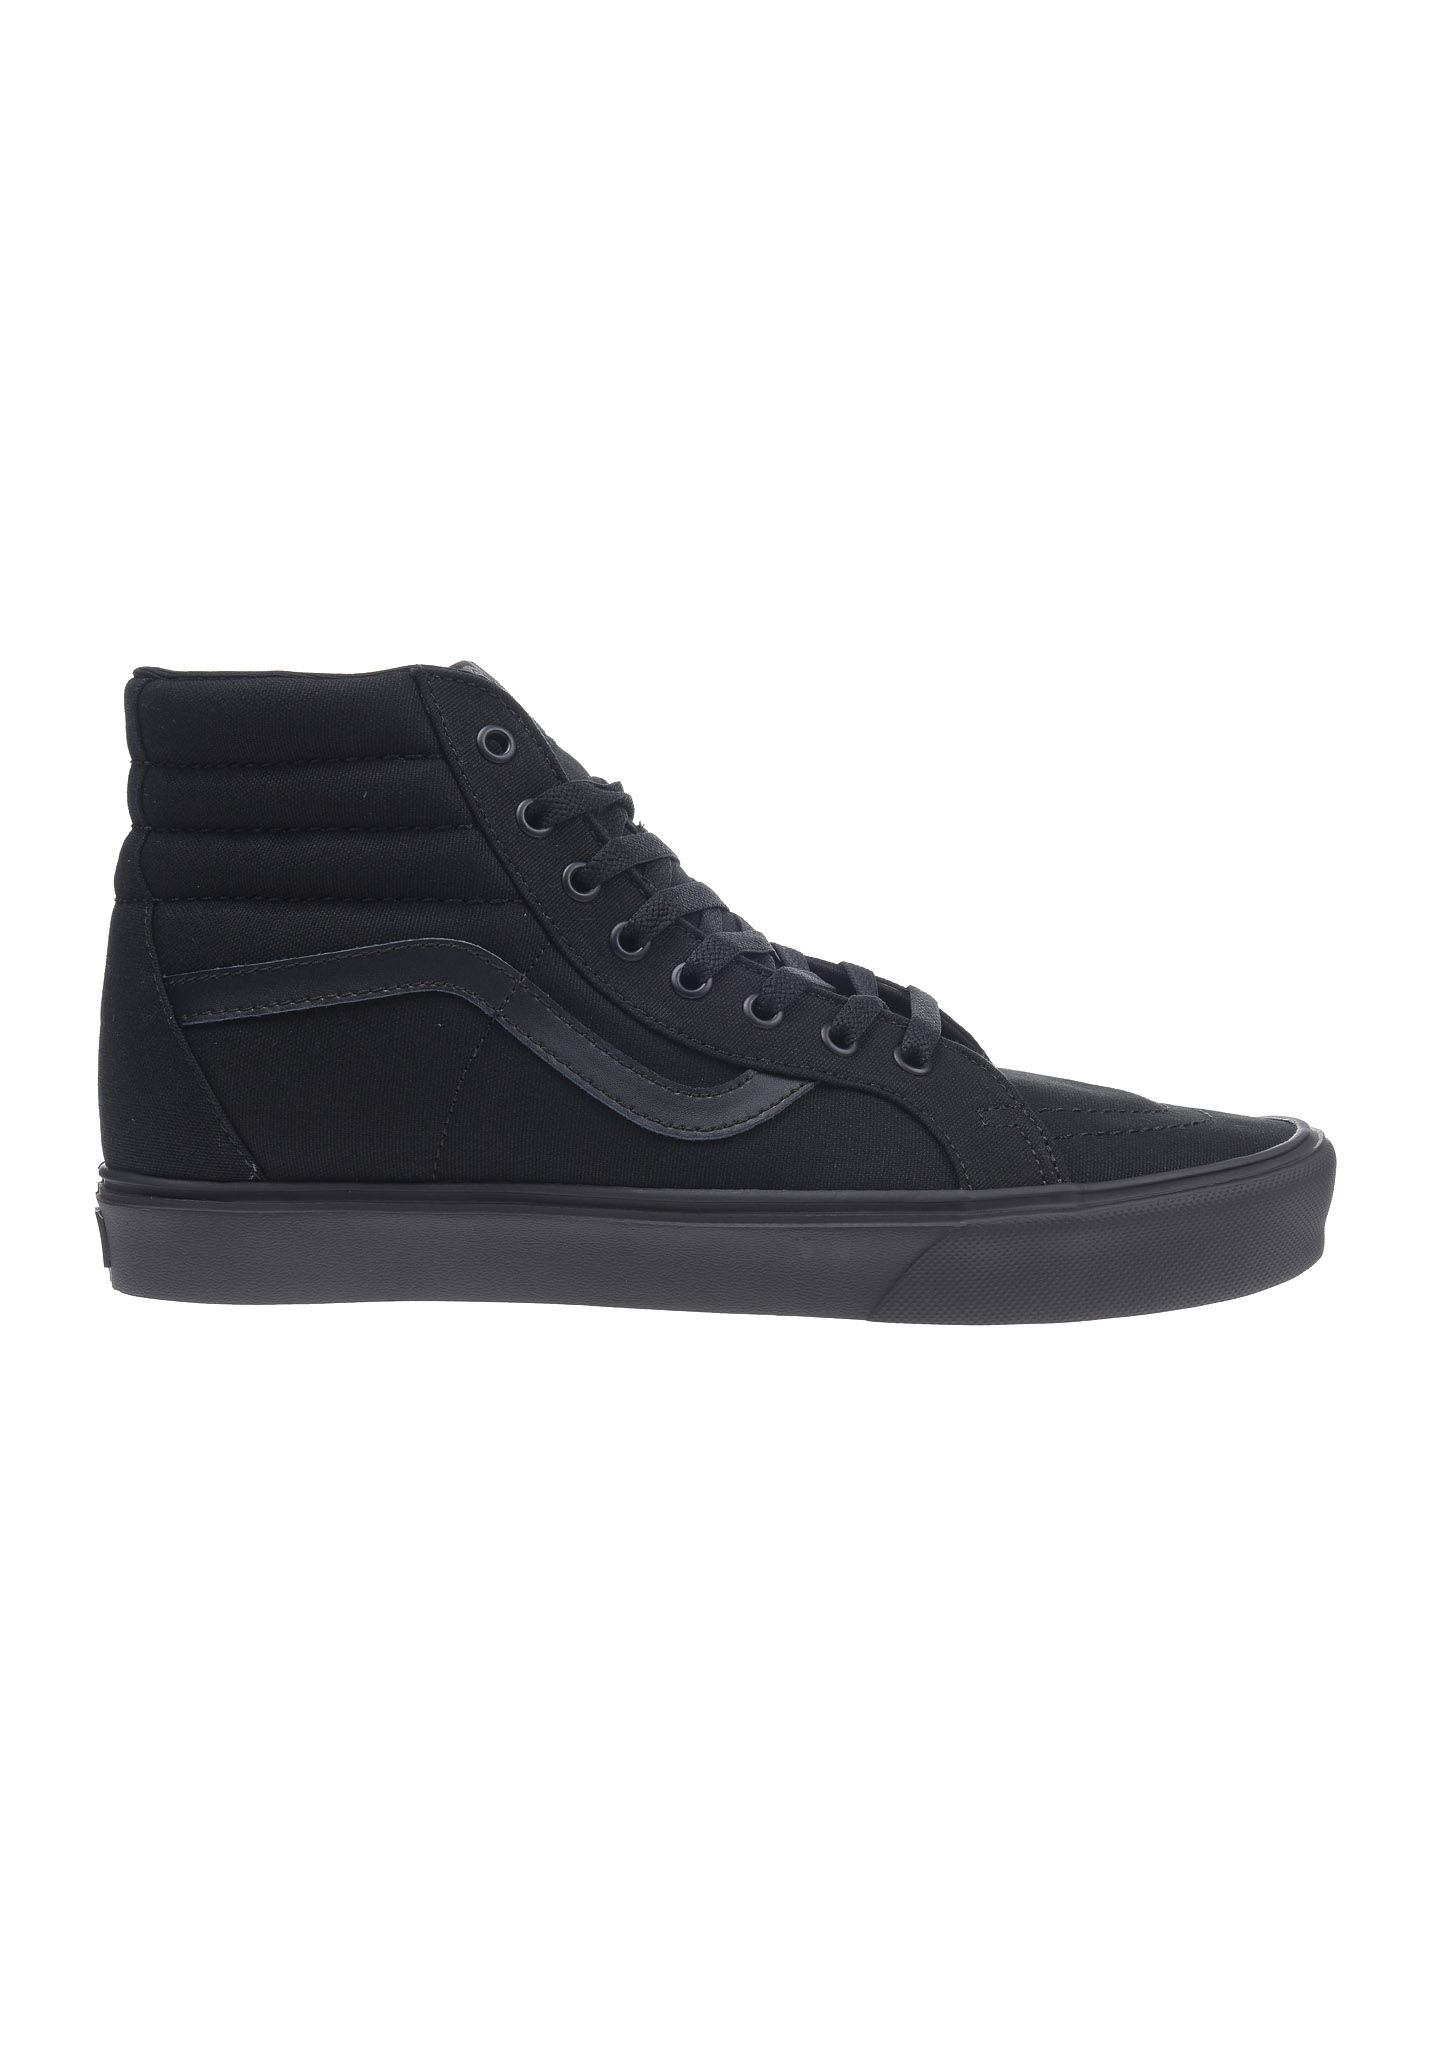 vans sk8 hi lite herren damen sneaker turnschuhe. Black Bedroom Furniture Sets. Home Design Ideas